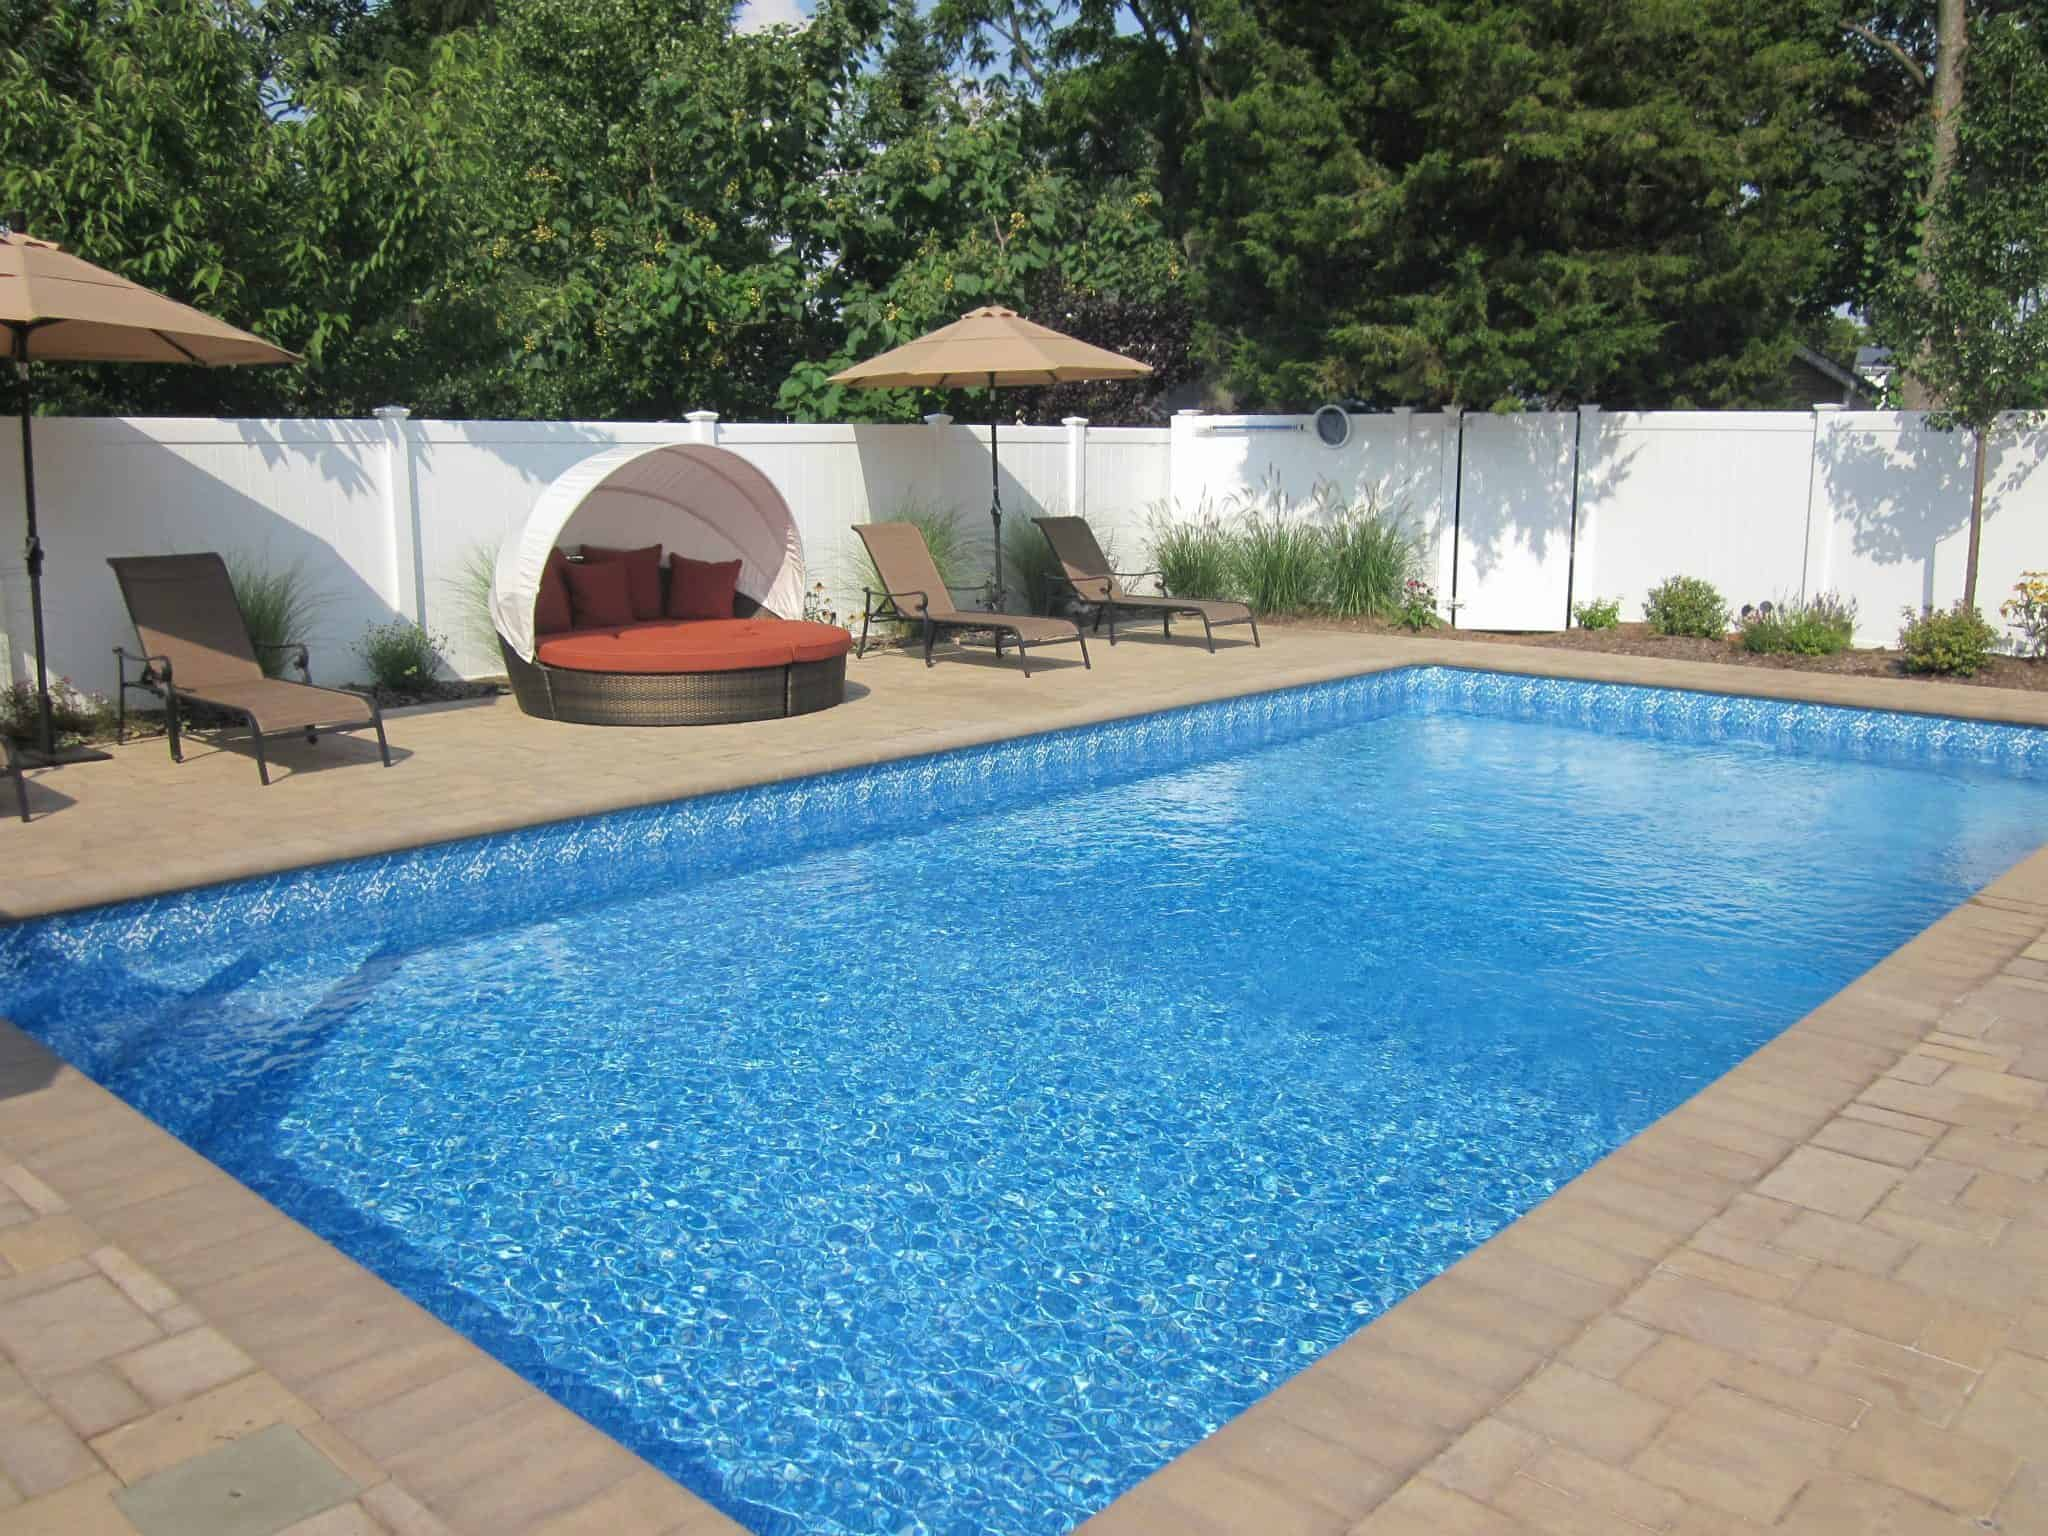 16' x 32' Pool with LED Color Changing Light - Bellmore, Long Island NY